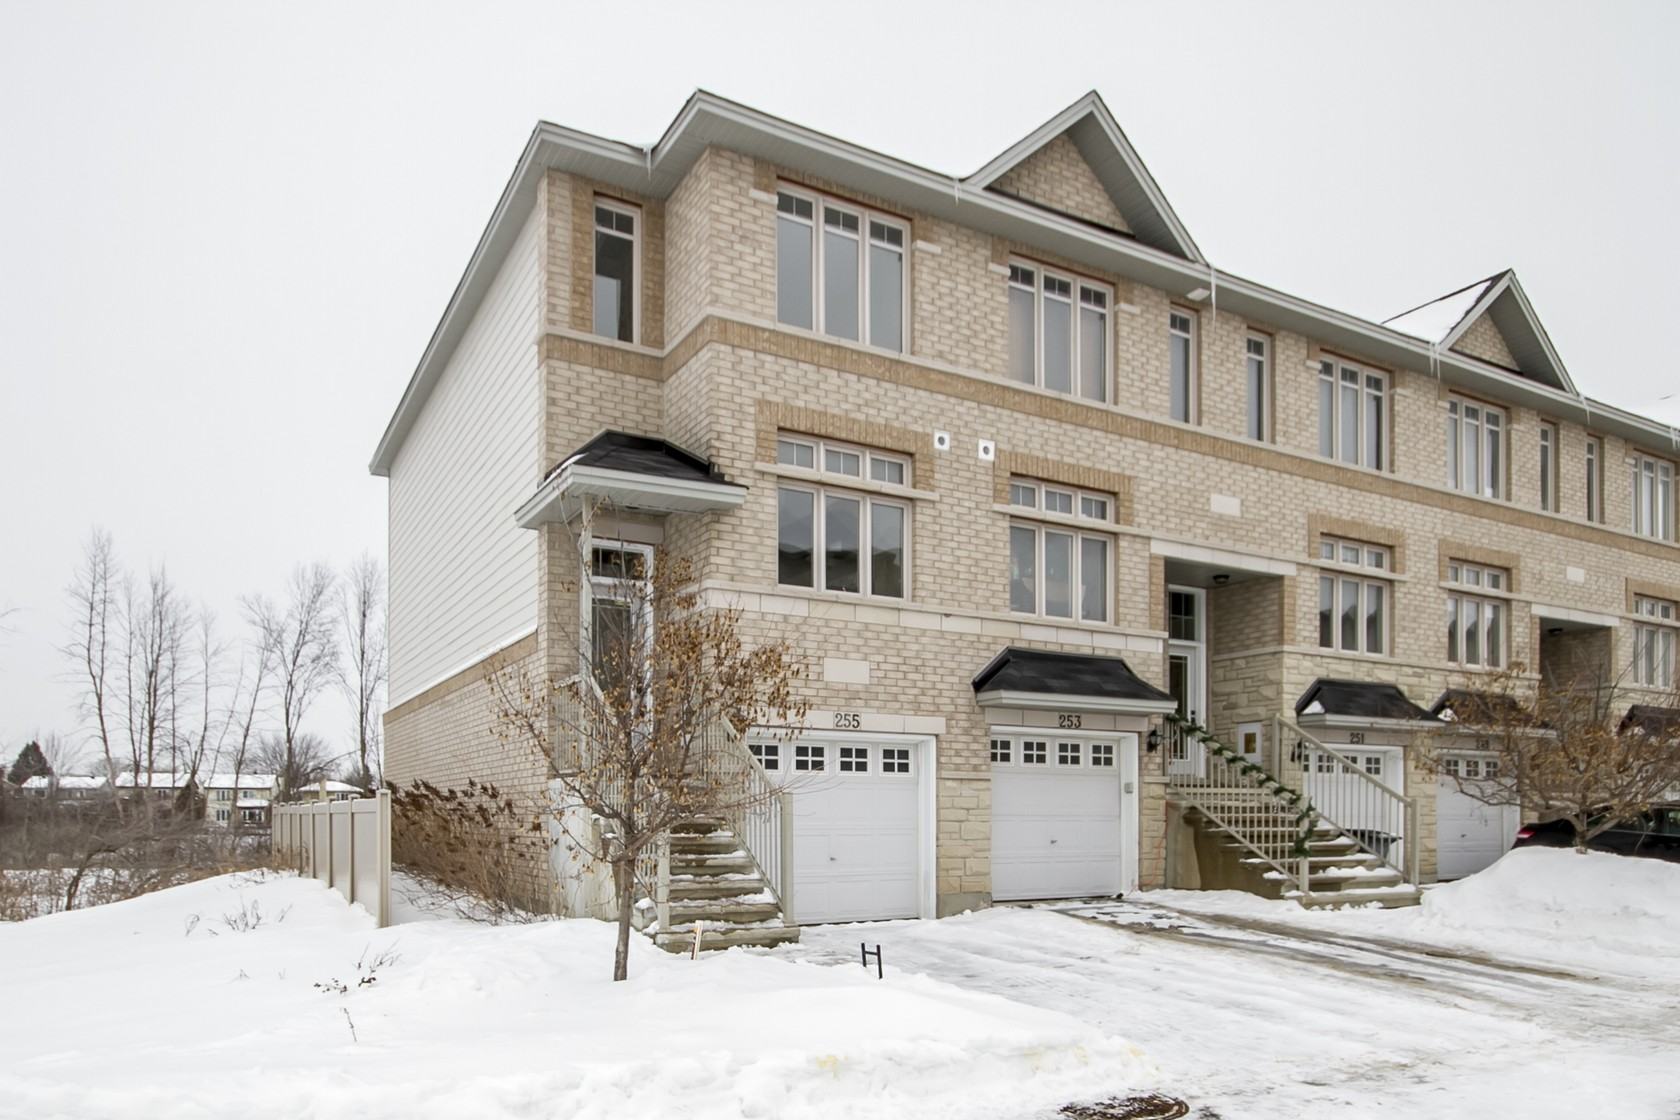 255 Stroget PrivateOttawa, Ontario  K2E 0A - Photo 1 - RP6073629651